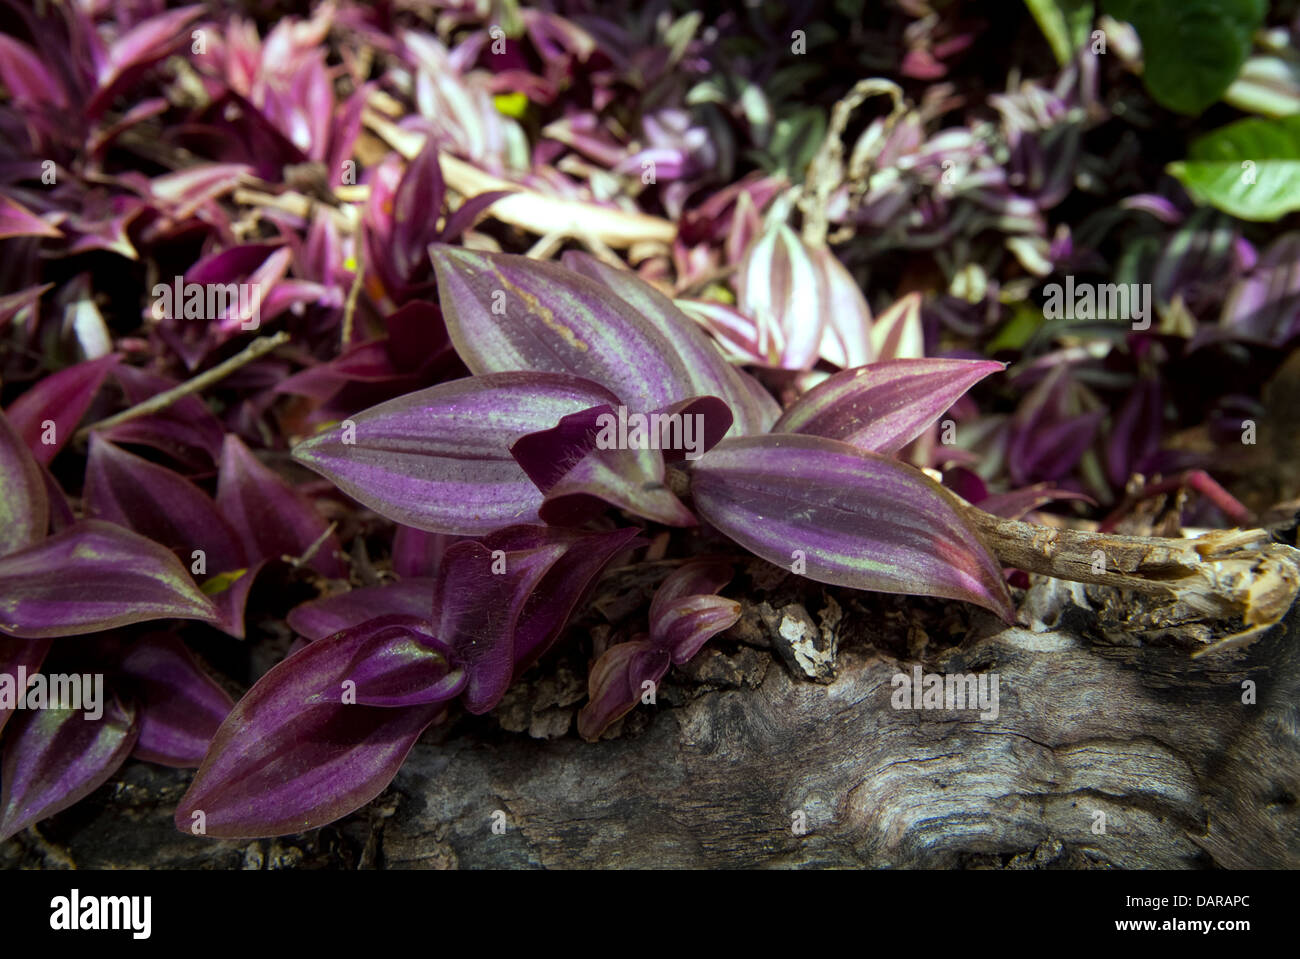 Wandering Jew Plant wild growing Caribbean St Lucia - Stock Image